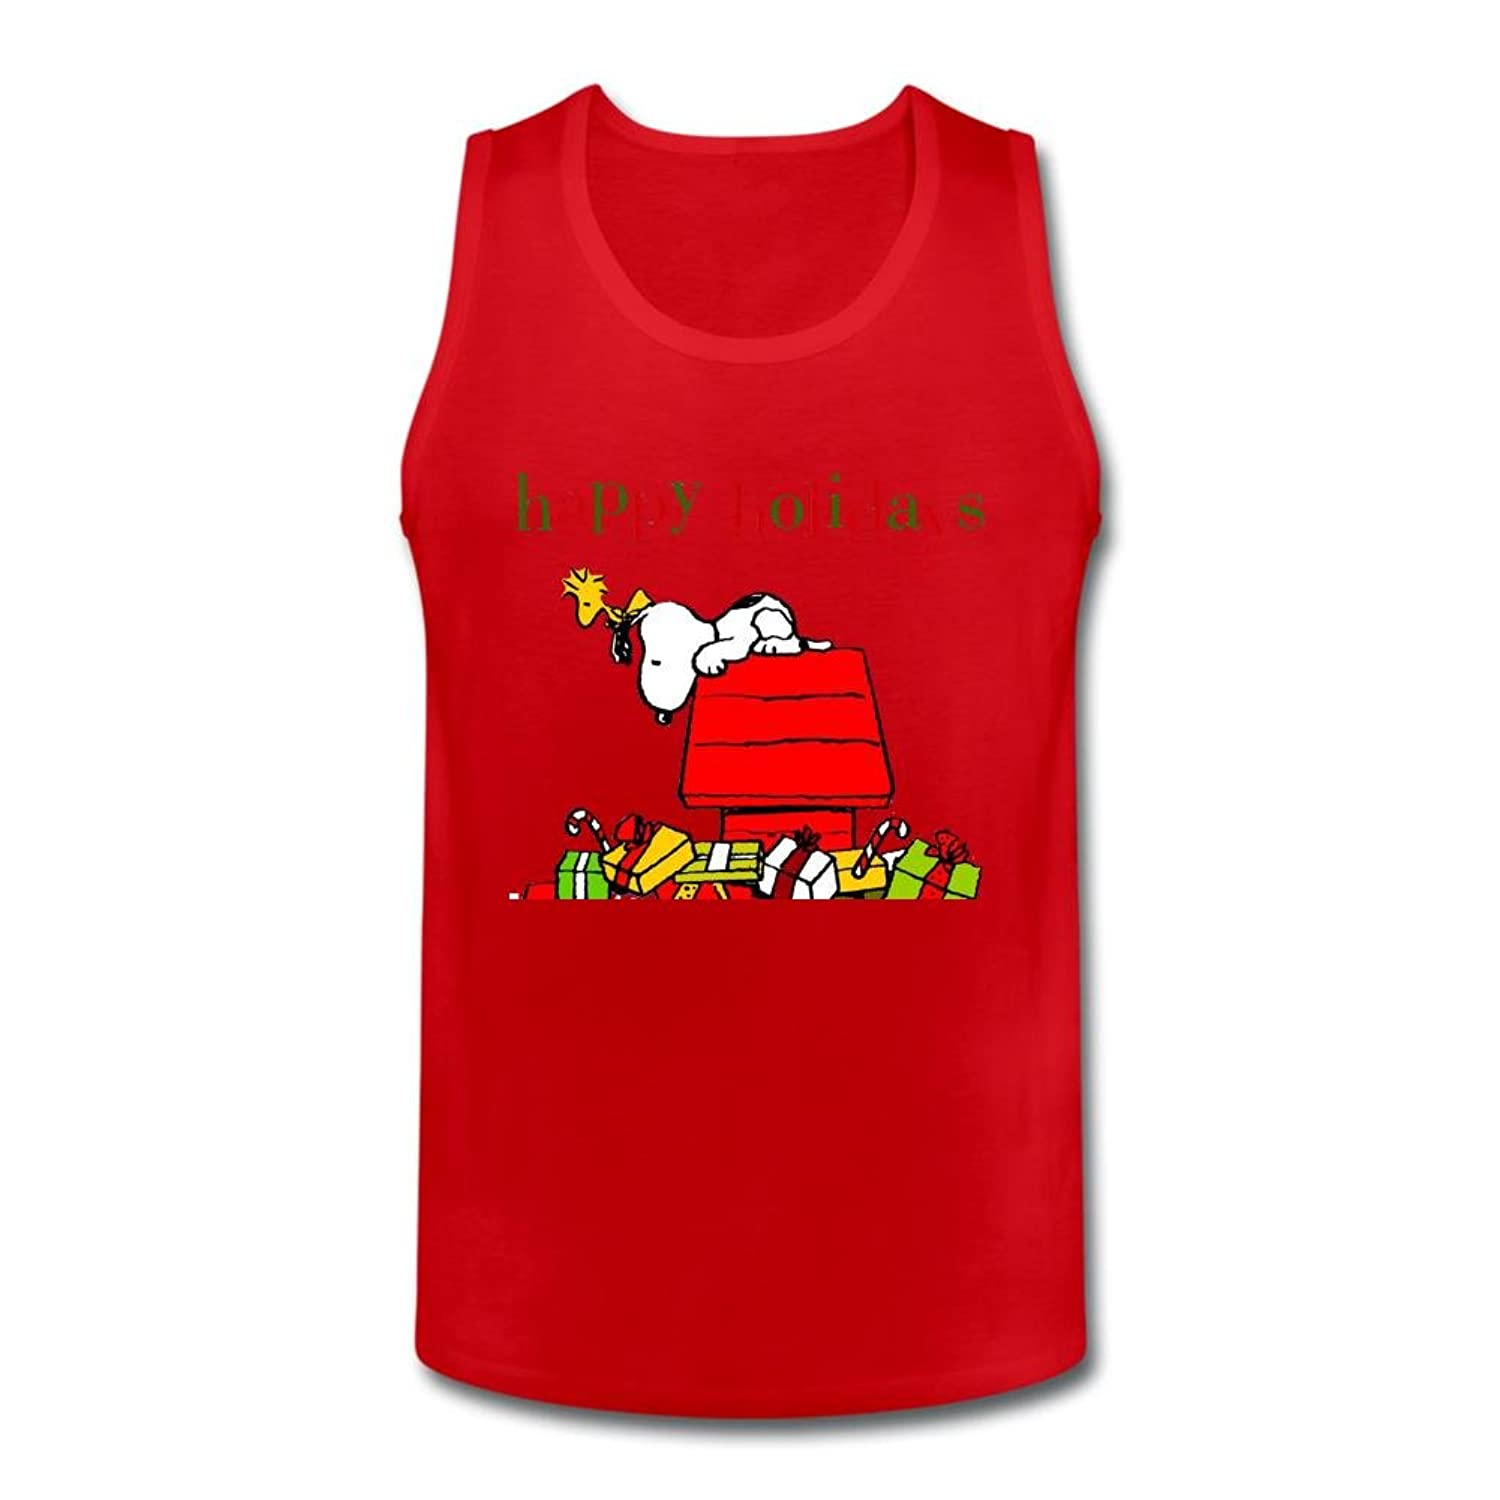 Shock Amiu Men's Snoopy Christmas Happy Holiday Gifts Vest Tank